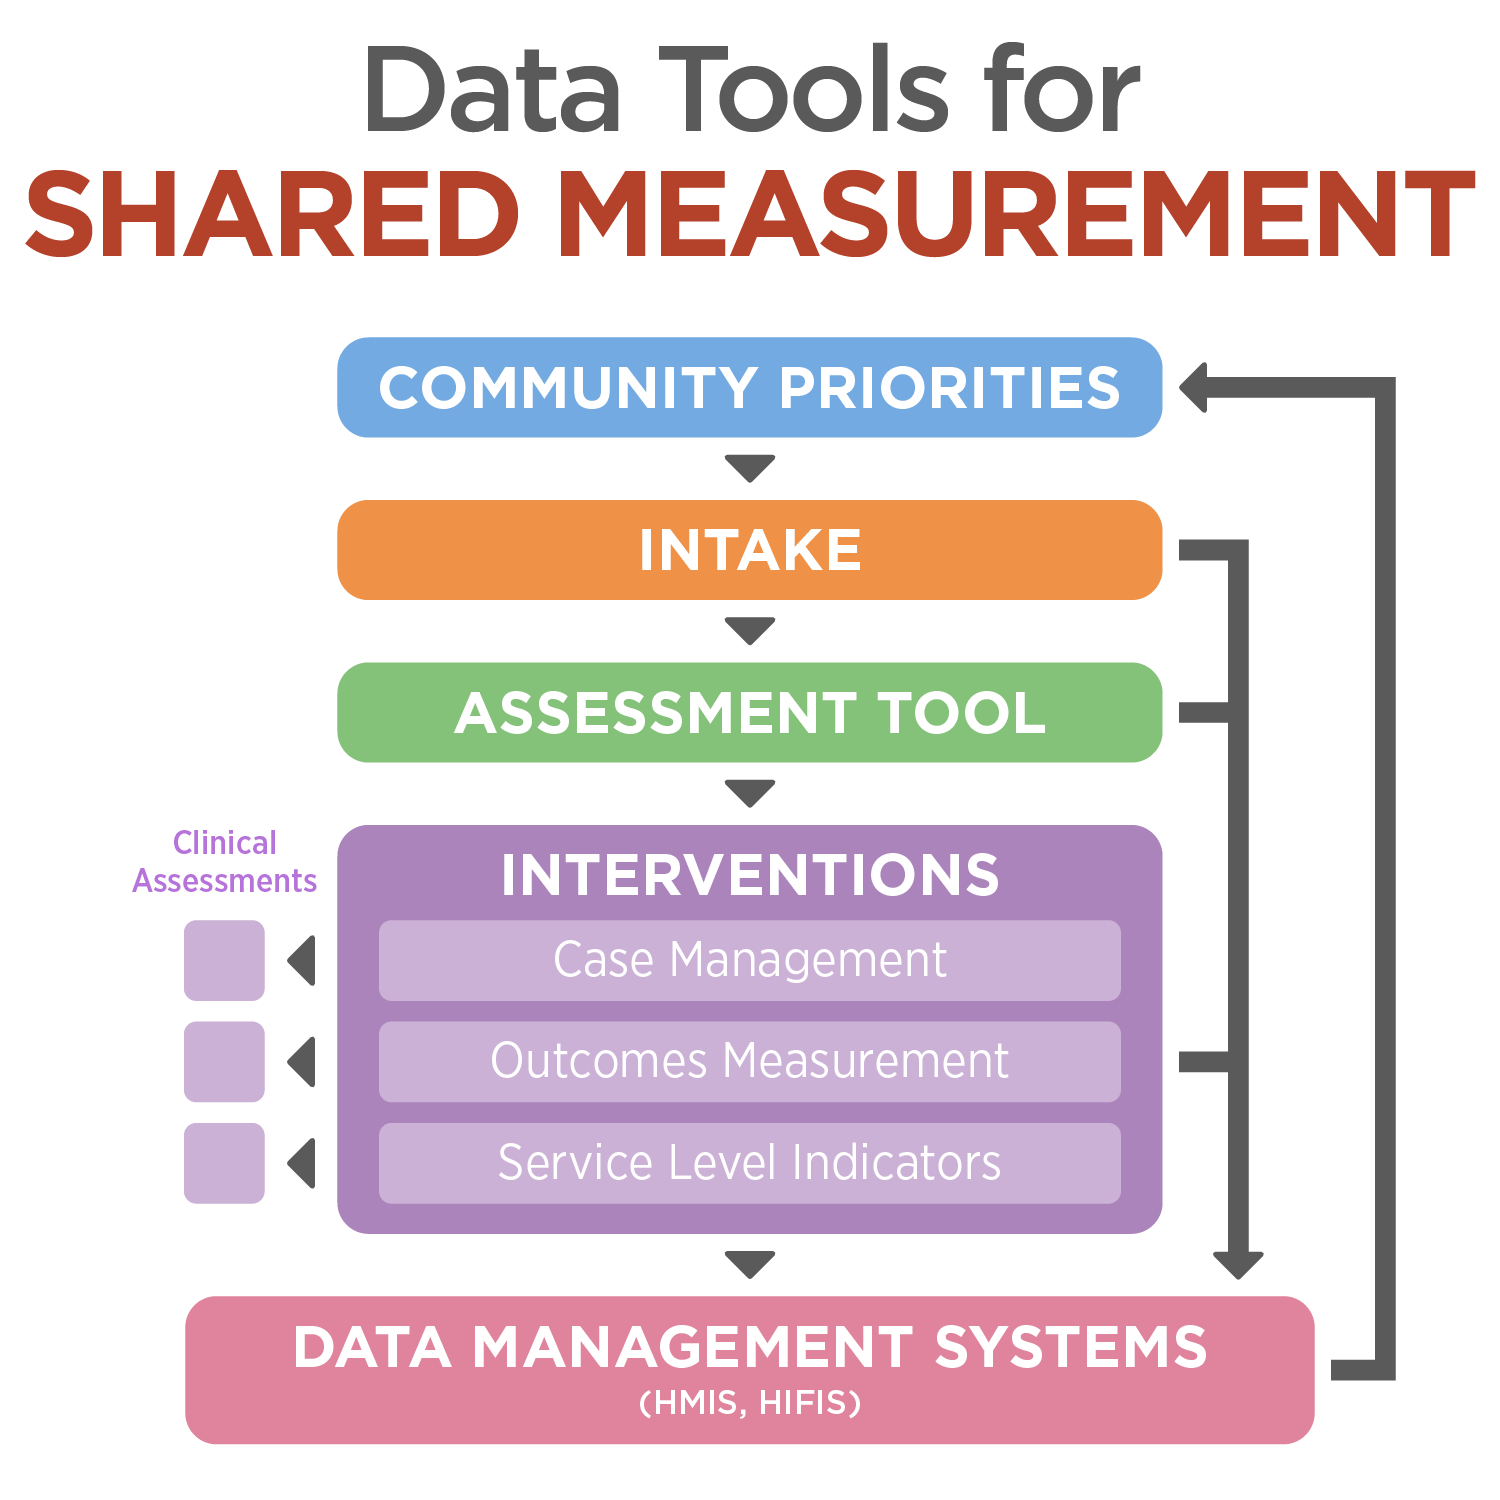 data tools for shared measurement